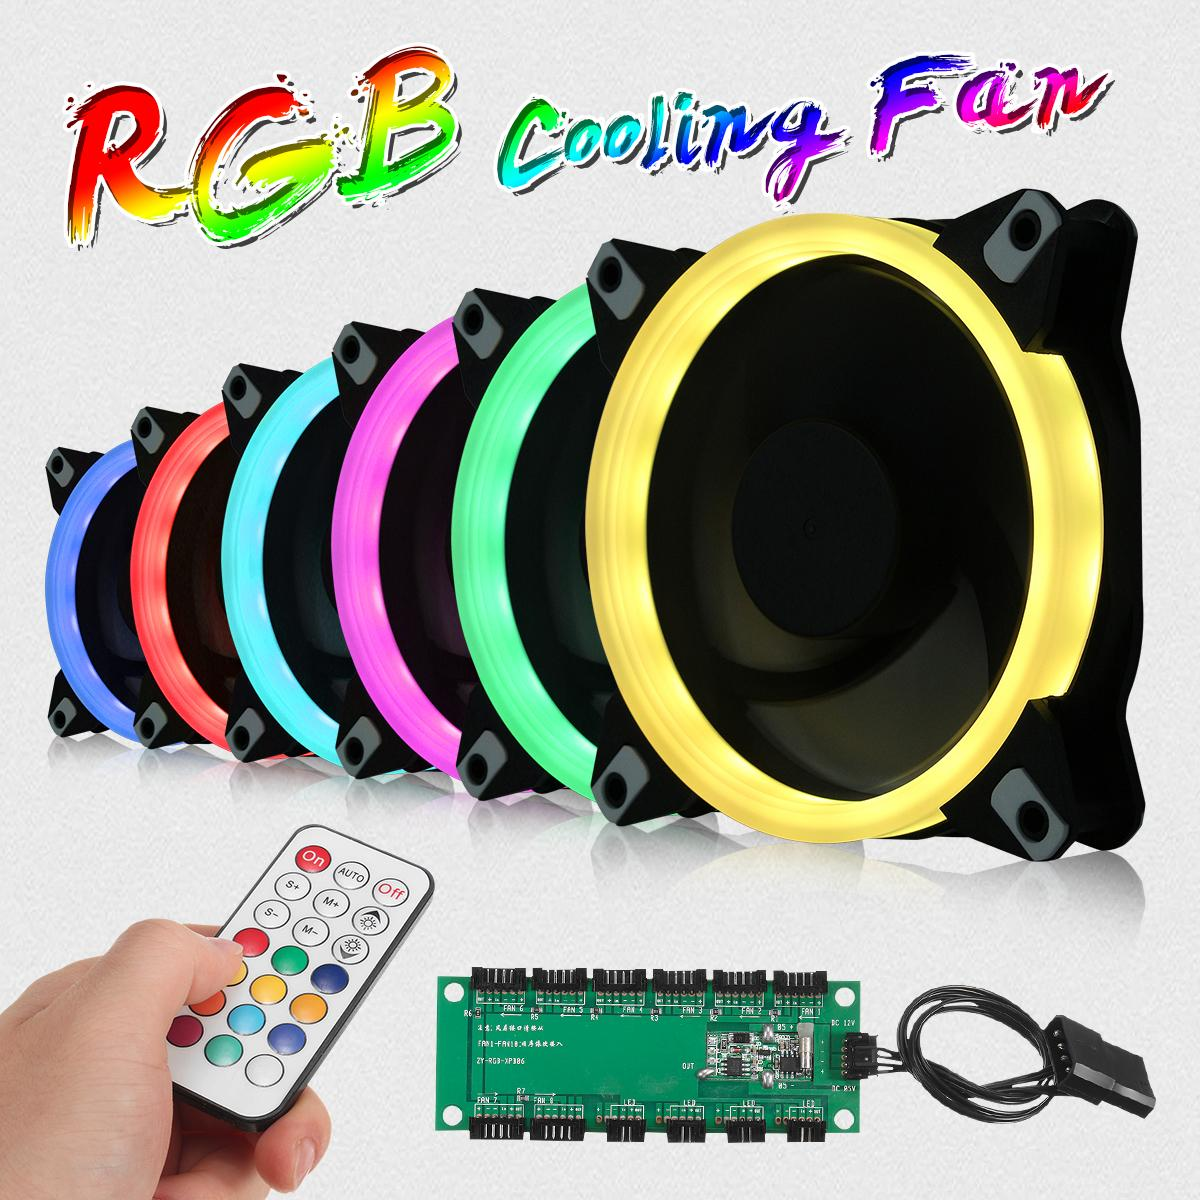 6pcs Computer Case PC Cooling Fan RGB Adjust LED 120mm Quiet + IR Remote New computer Cooler Cooling RGB Case Fan For CPU computer cooler radiator with heatsink heatpipe cooling fan for hd6970 hd6950 grahics card vga cooler